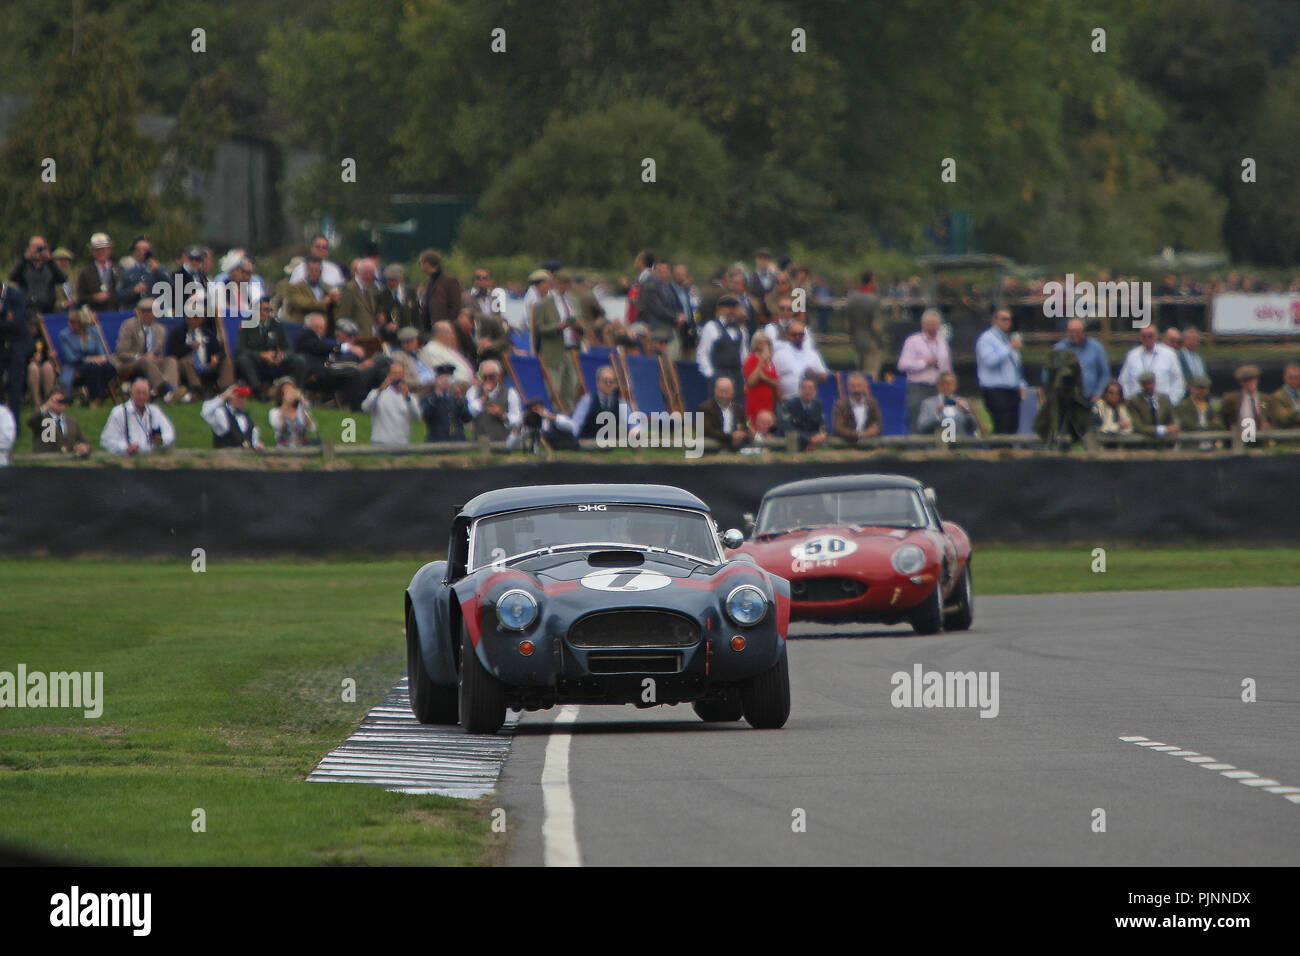 Goodwood, West Sussex, UK. 8th September 2018. RAC TT celebration at the 20th Goodwood Revival in Goodwood, West Sussex, UK. © Malcolm Greig/Alamy Live News - Stock Image